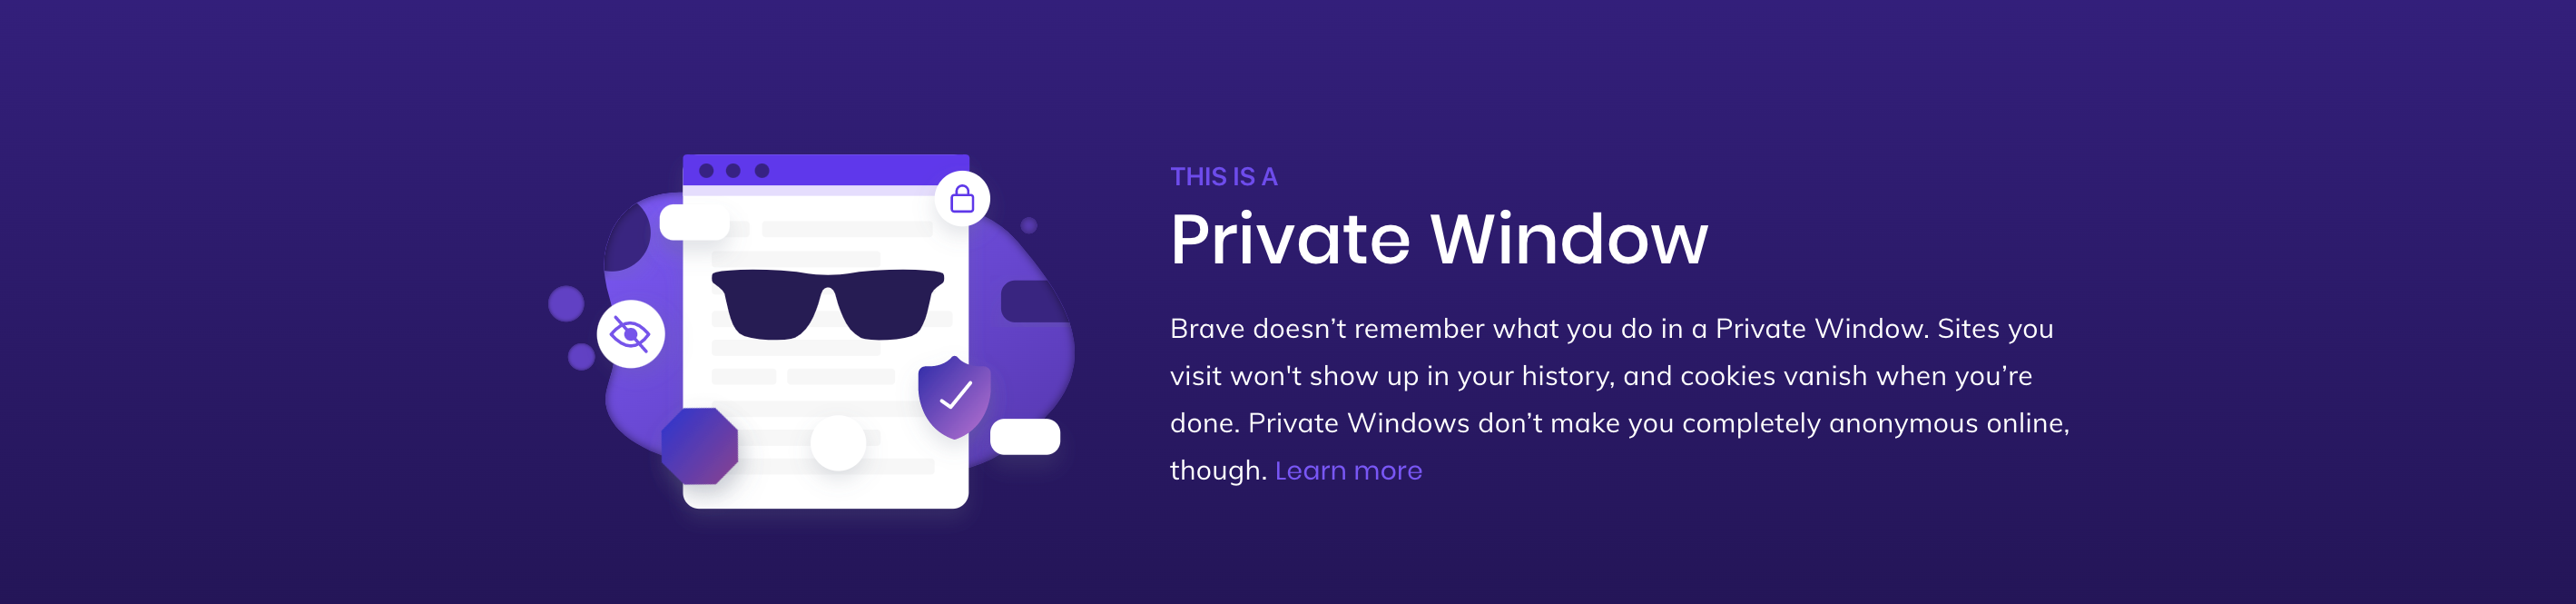 privatewin.png